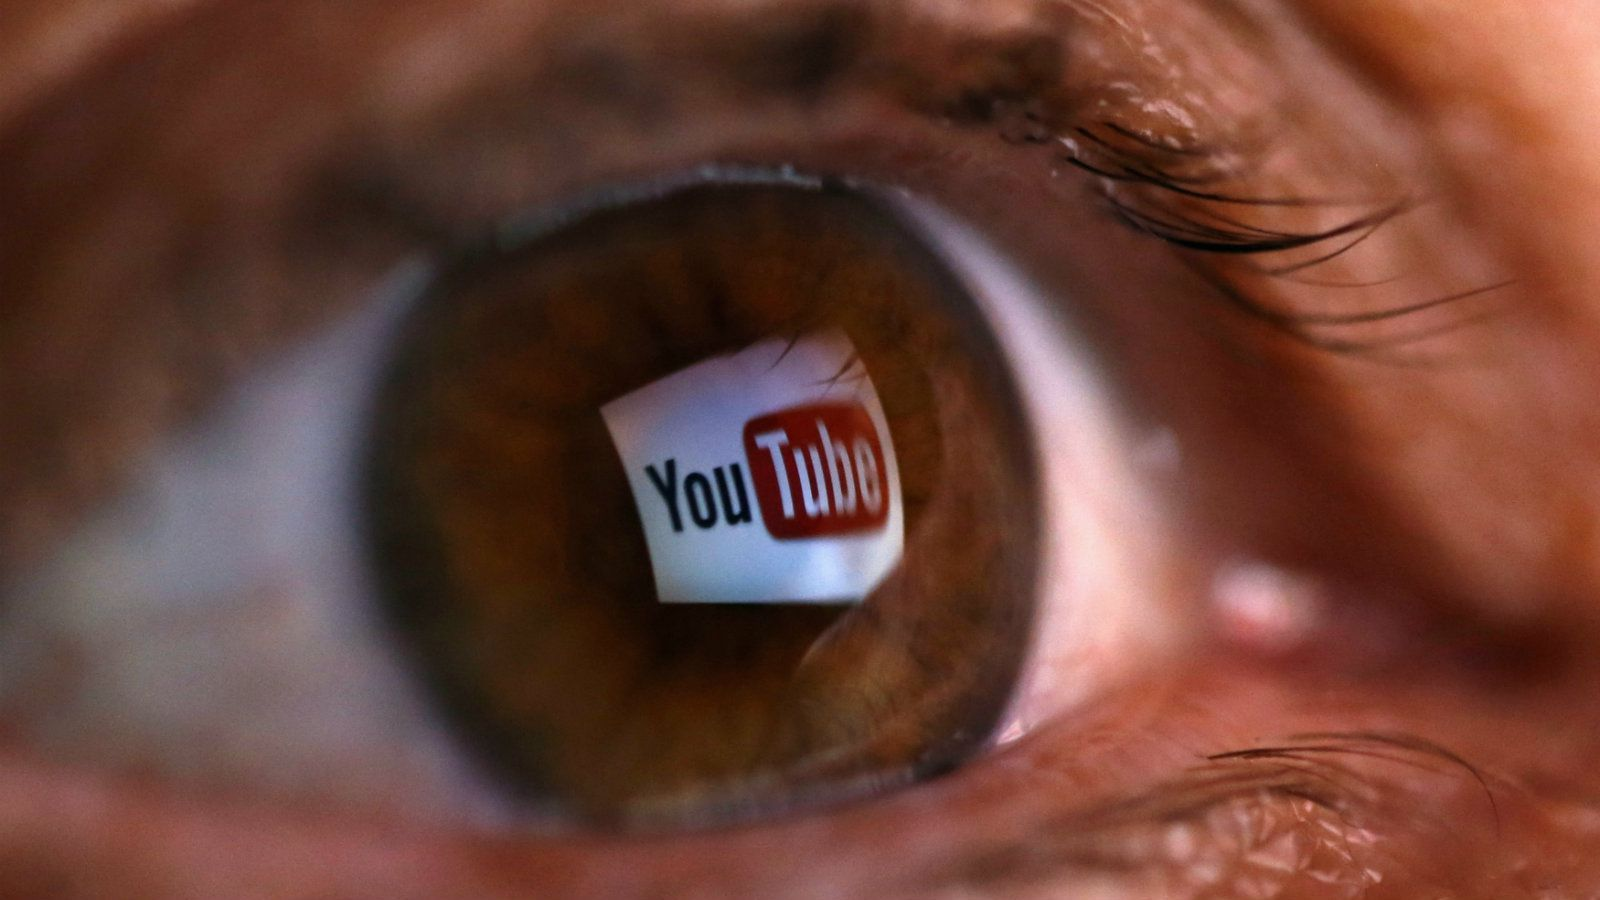 When whining becomes a weapon: The latest Youtube ad-pocalypse